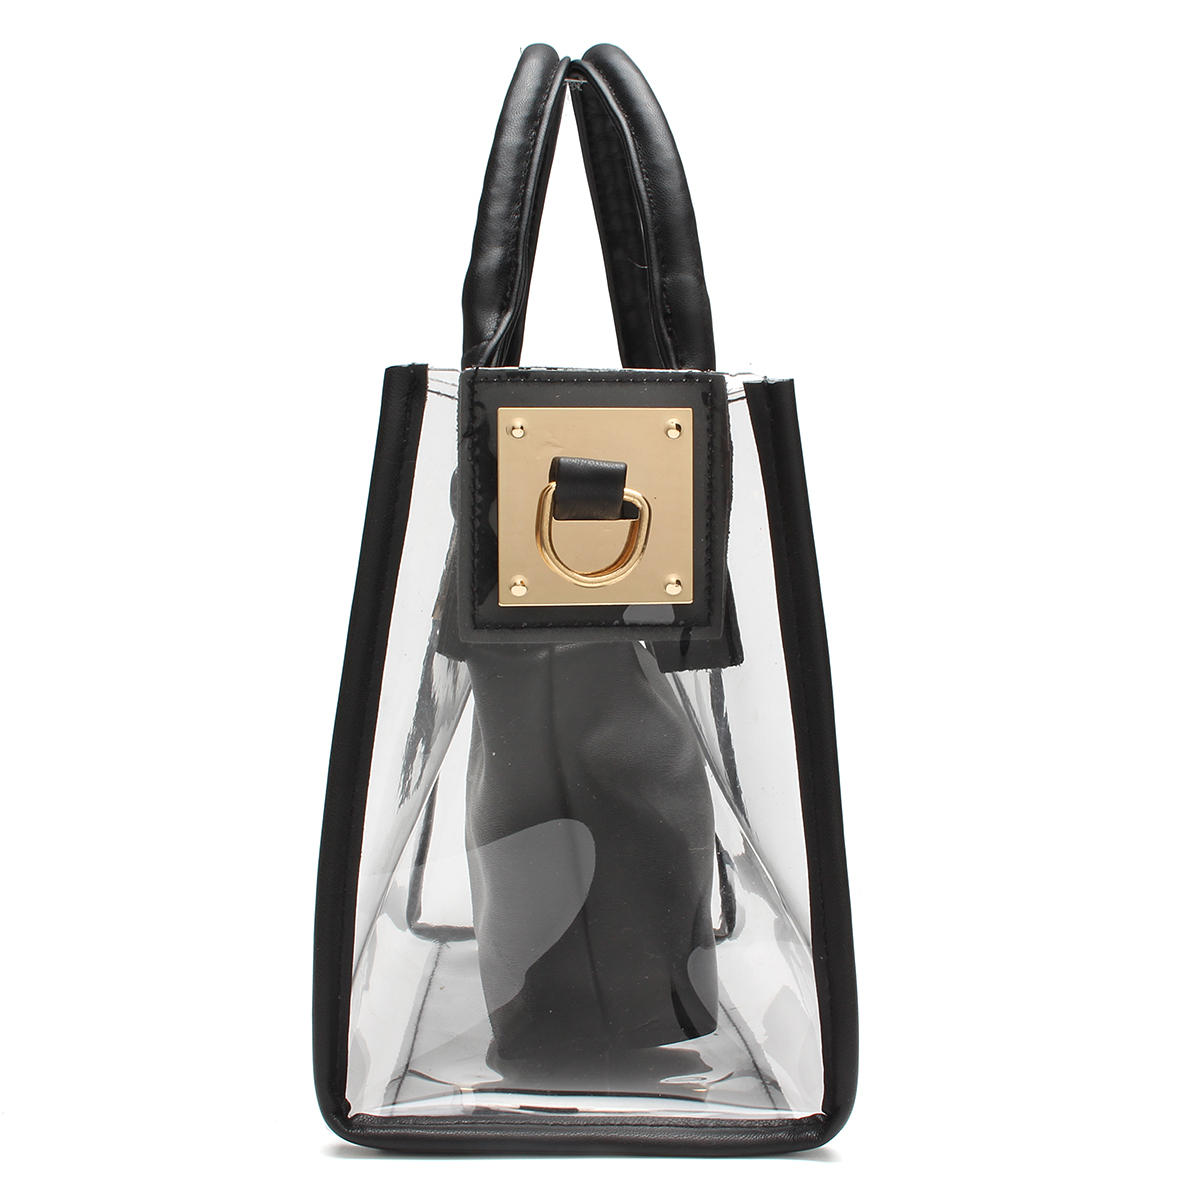 b7e0ca4174d3 ... Jelly Candy Women Messenger Tote Bag. Share   get Points  Share for the  first three times everyday and get 5 Points per time. 600x600  600x600   600x600 ...